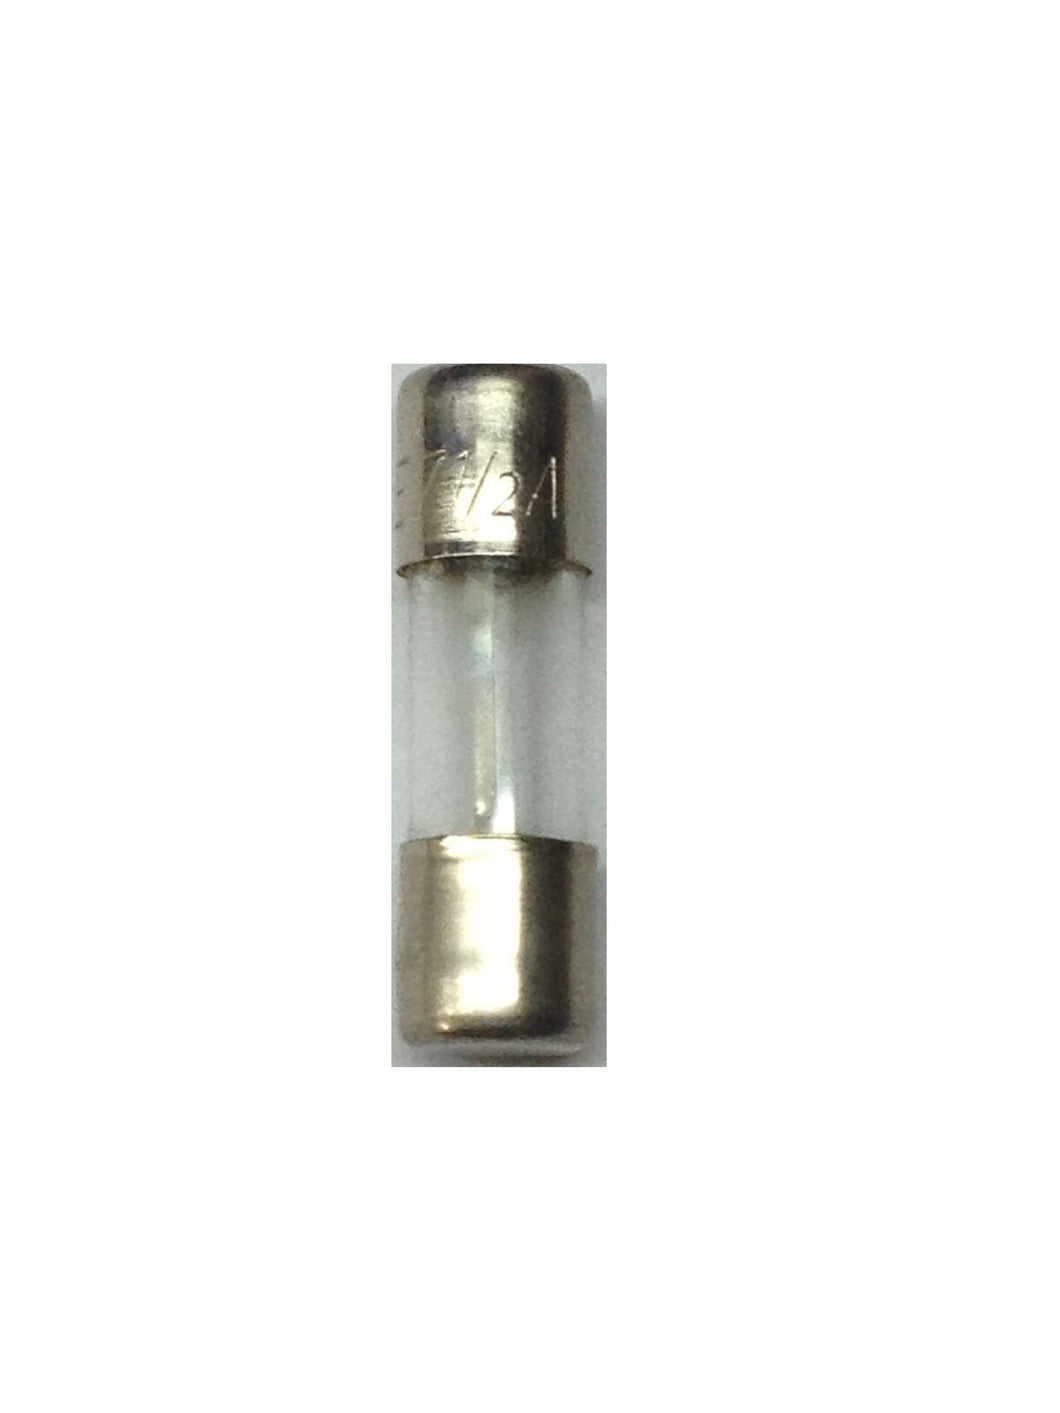 Generac Guardian Fuse 7.5A SFE-7 1/2 039985 By Universal Generator Parts